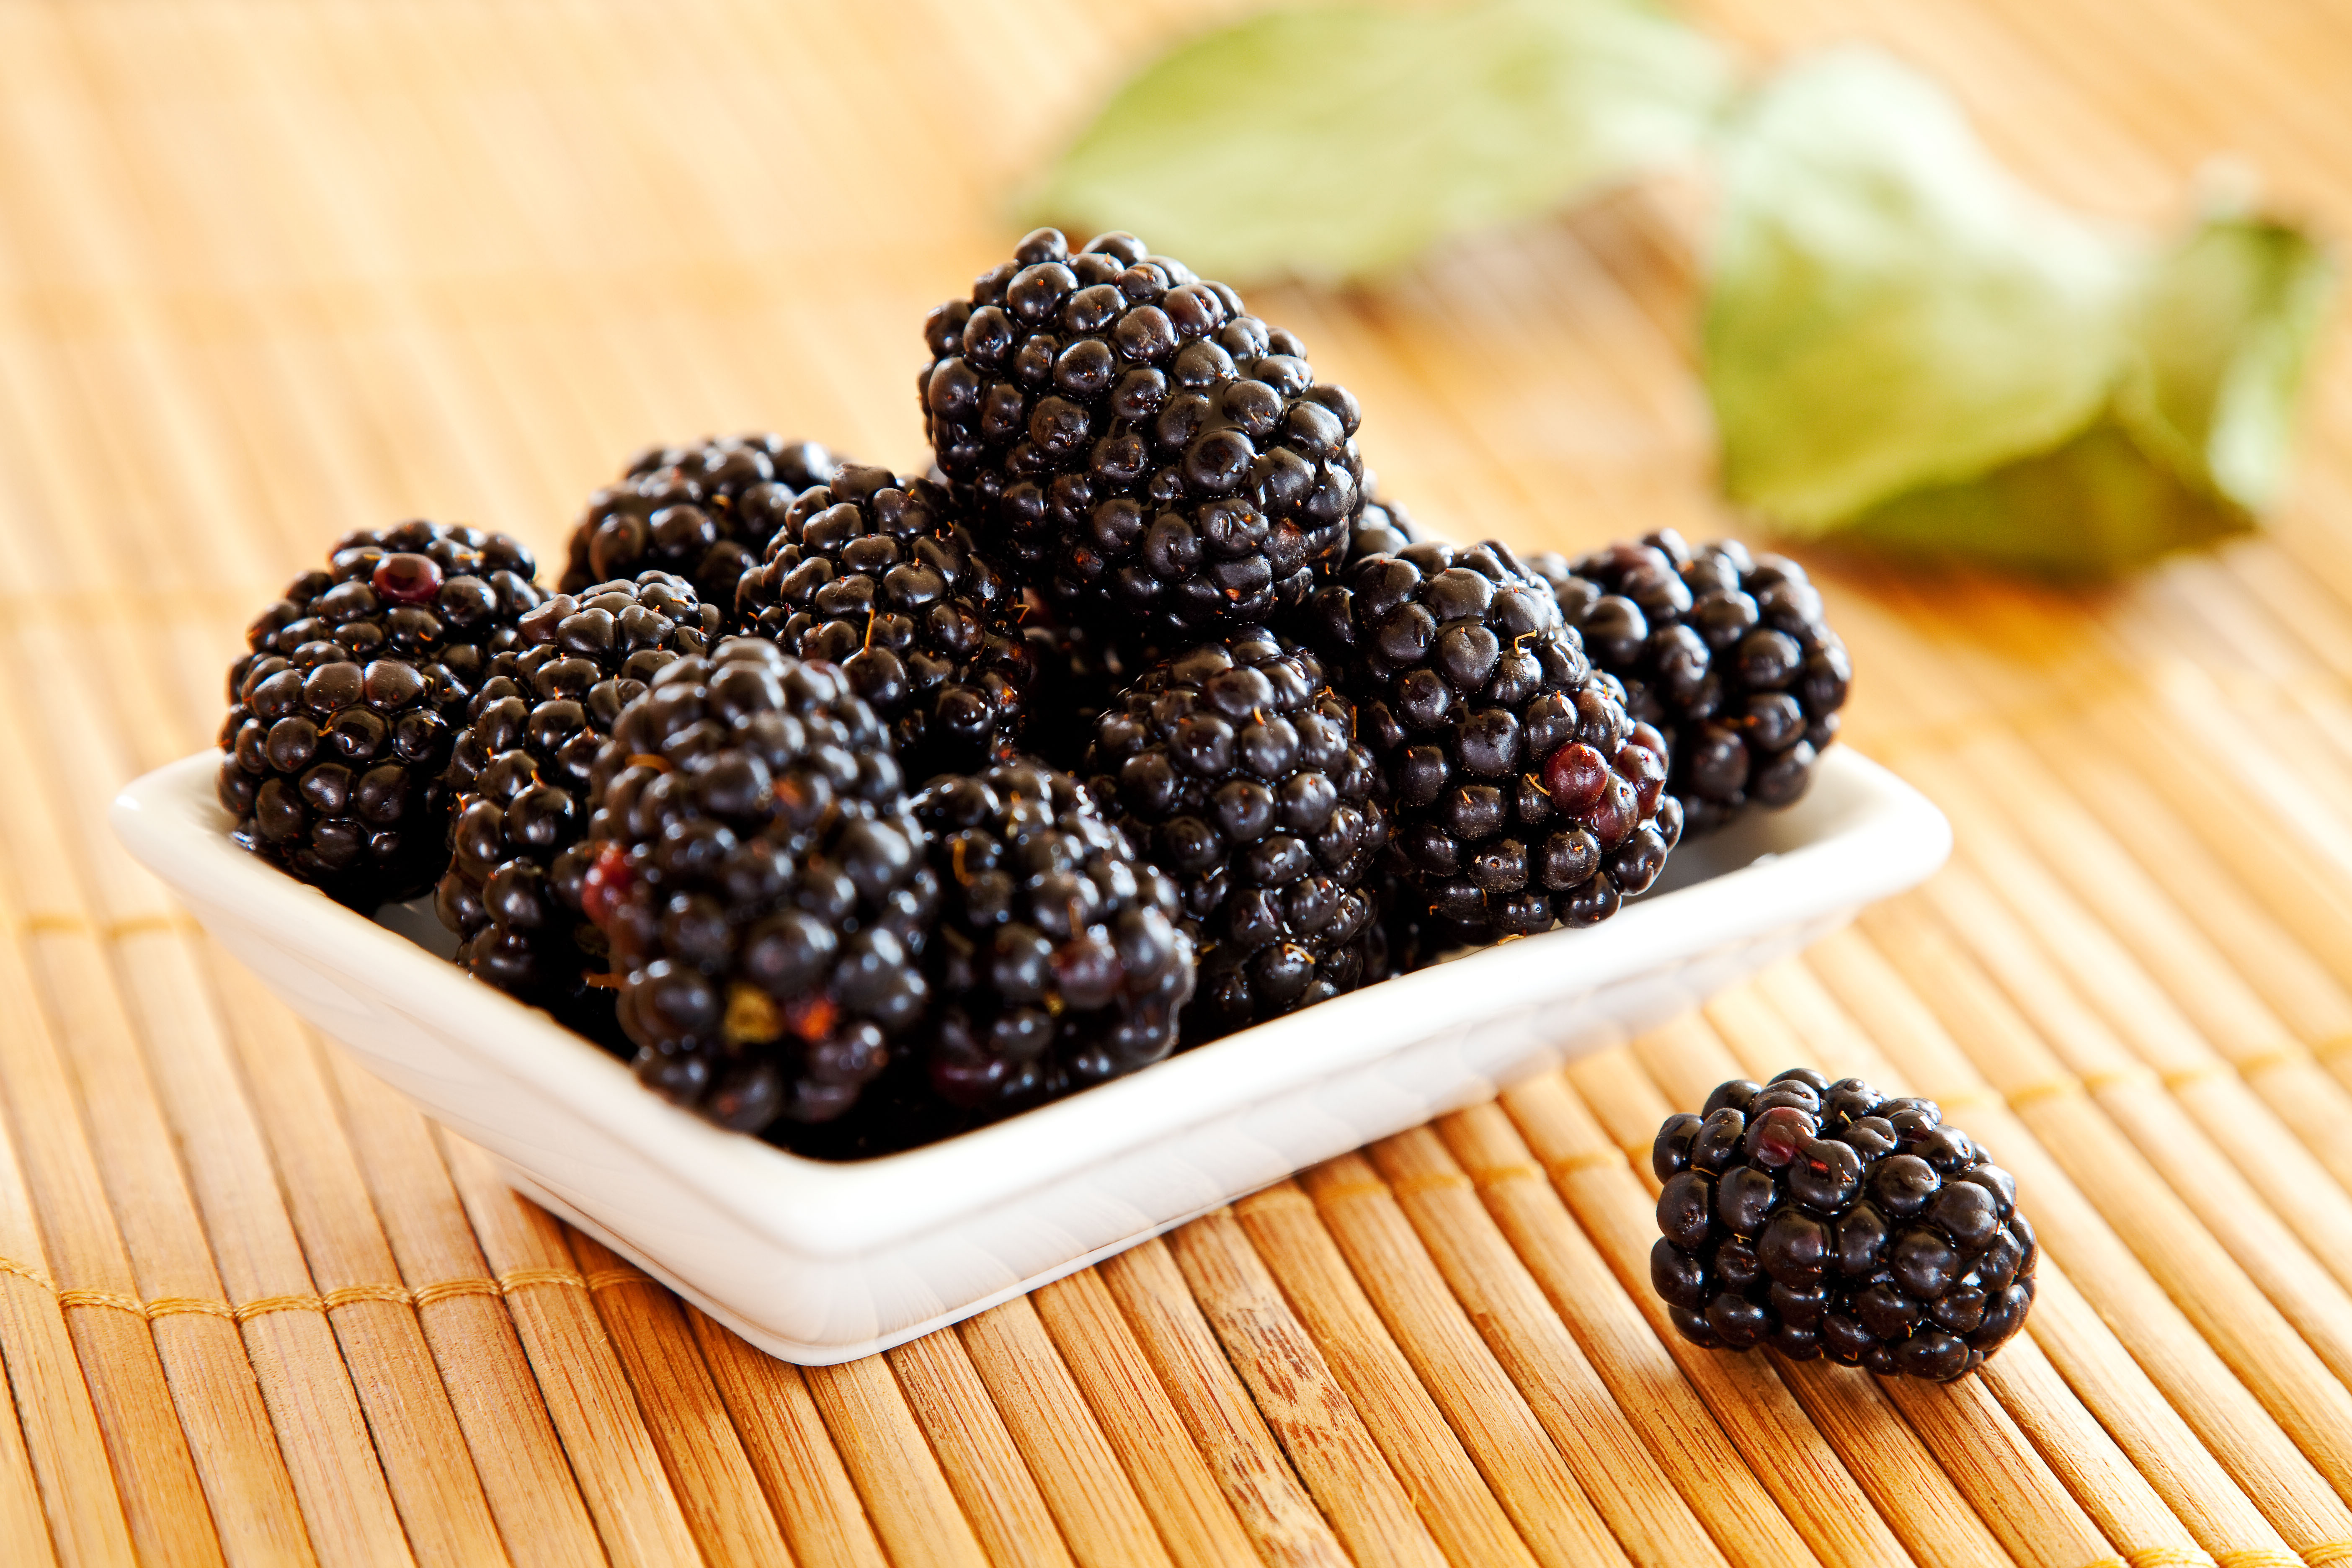 How to grow blackberries that are 'consistently plump, reliably sweet and almost laughably juicy' - Country Life